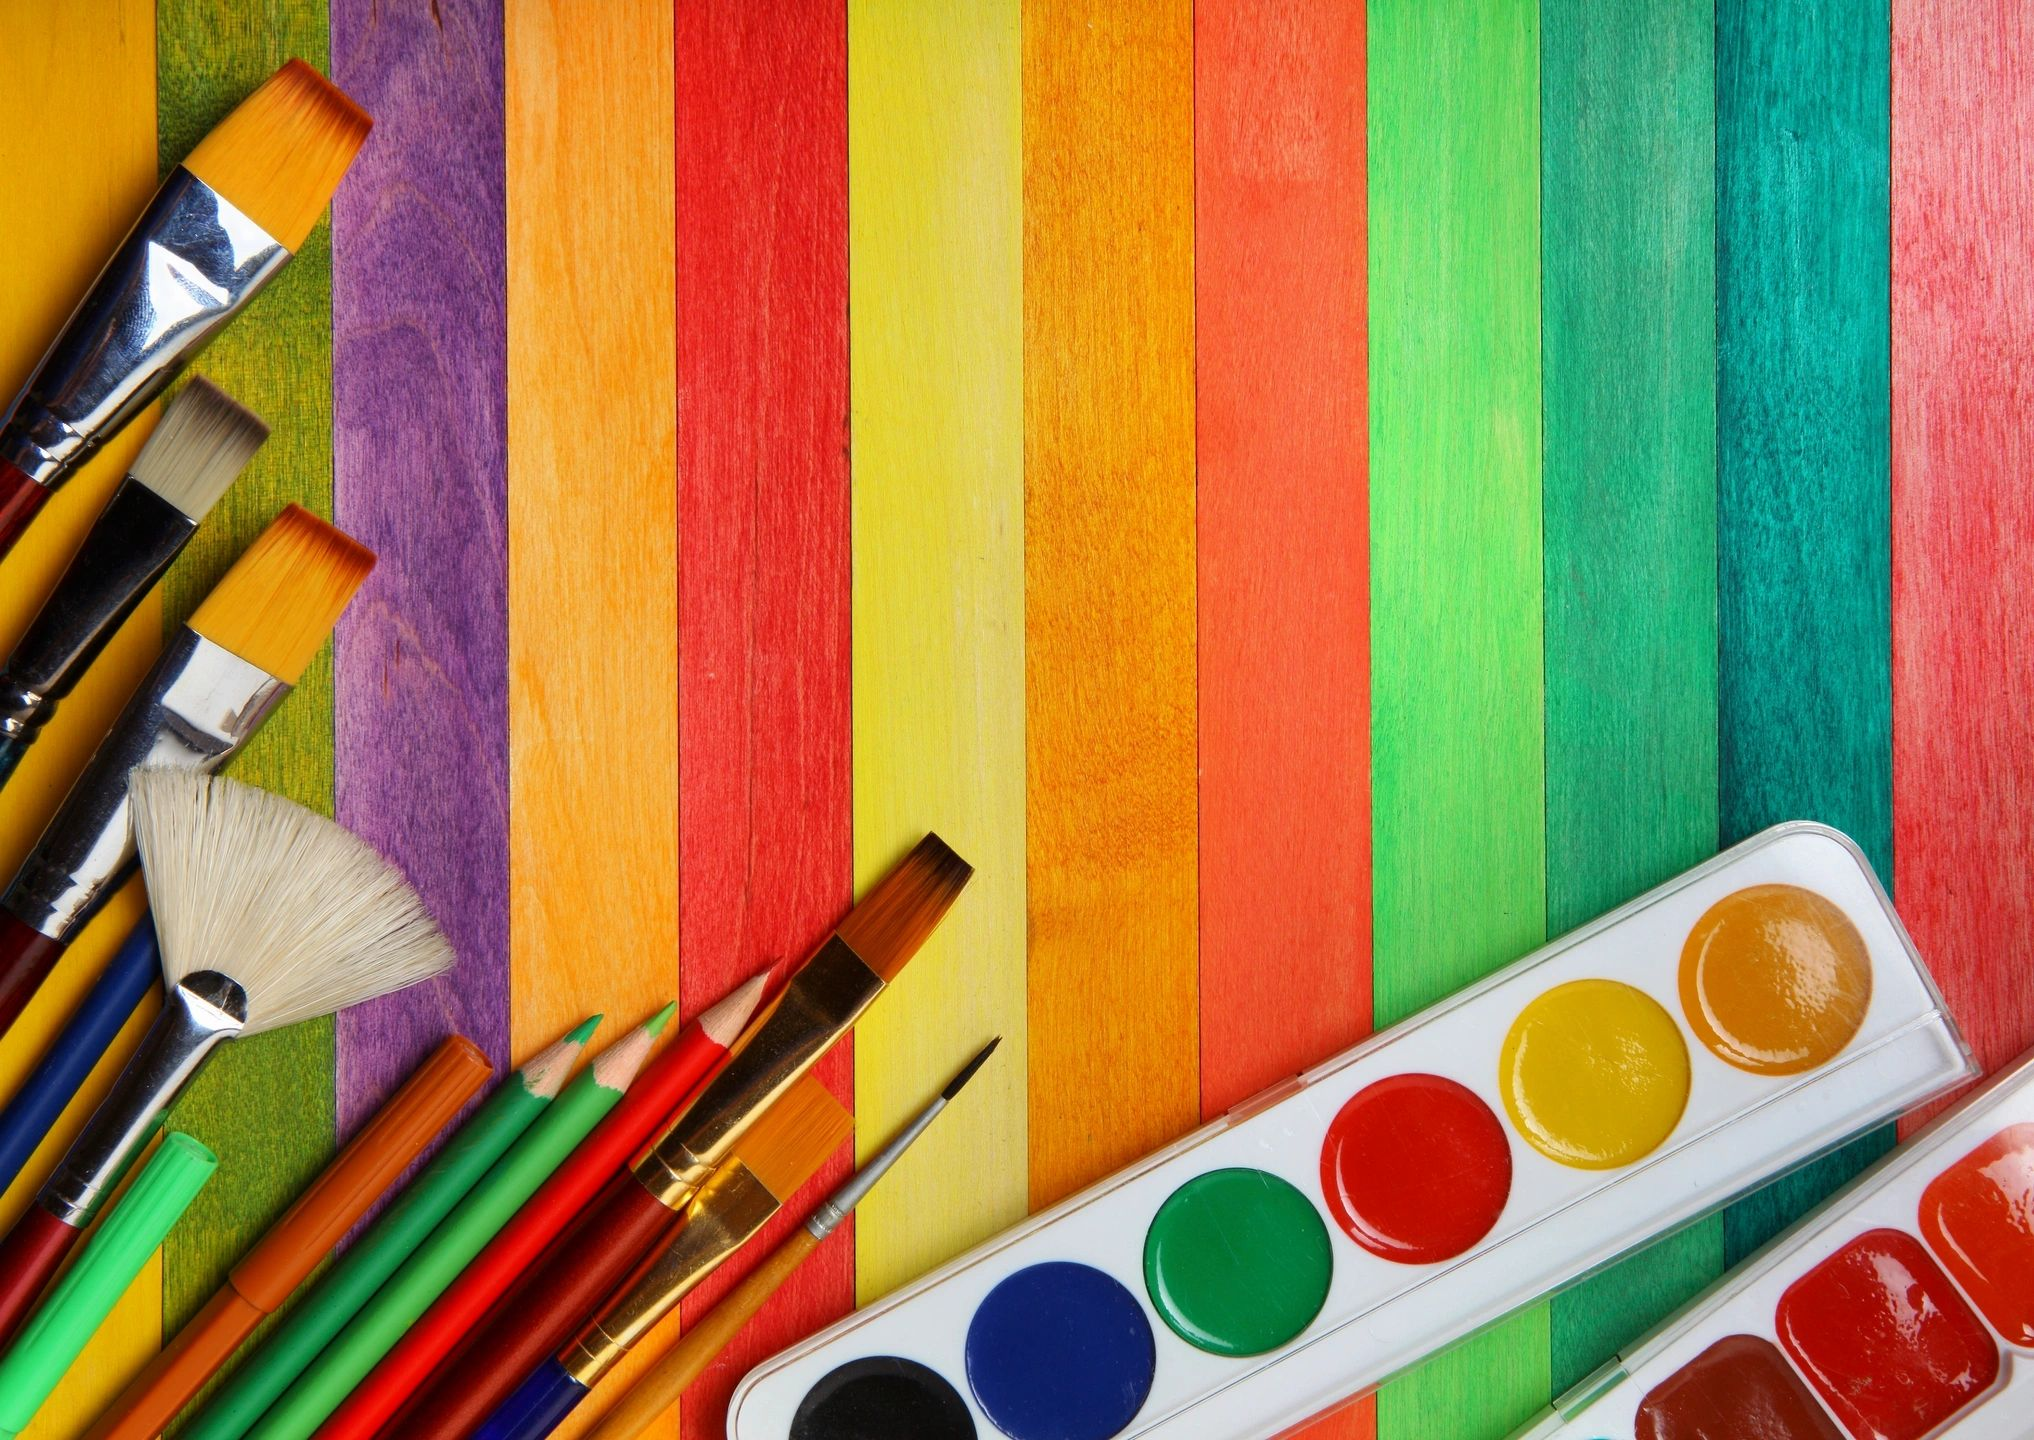 using colour in data visualisation can provide key benefits